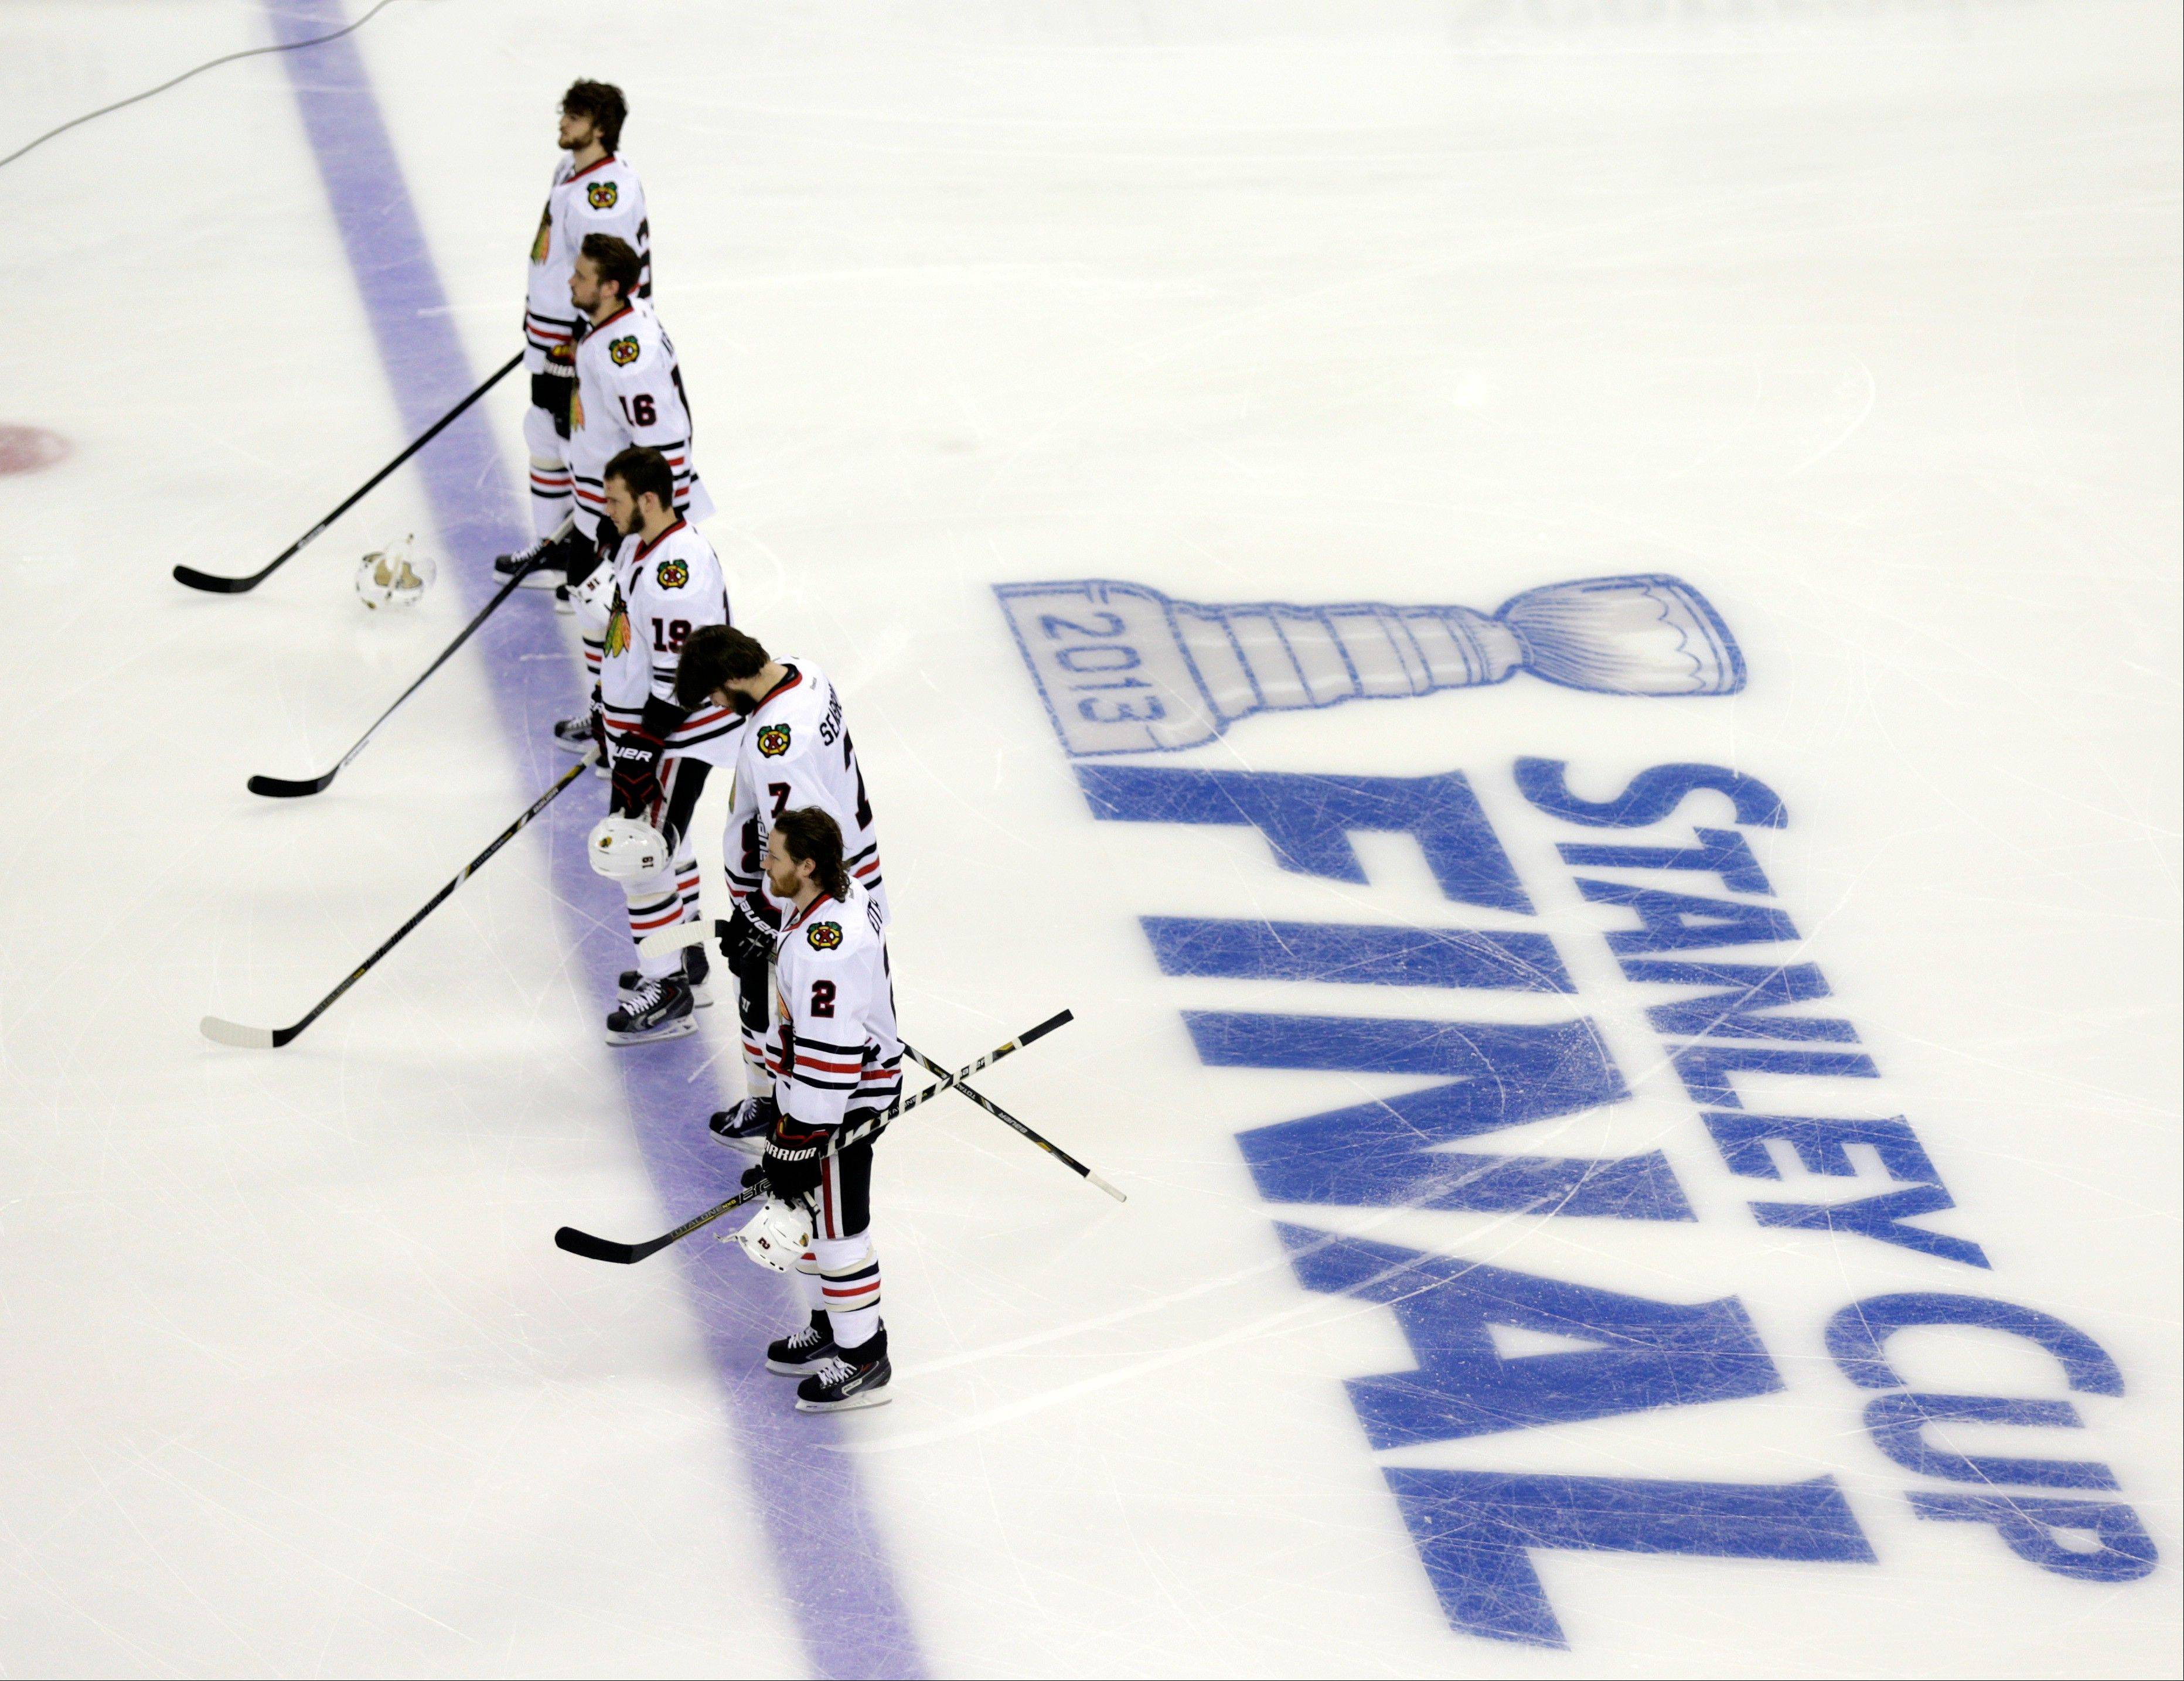 Chicago Blackhawks players stand during the national anthem before Game 3 of the NHL hockey Stanley Cup Finals against the Boston Bruins.